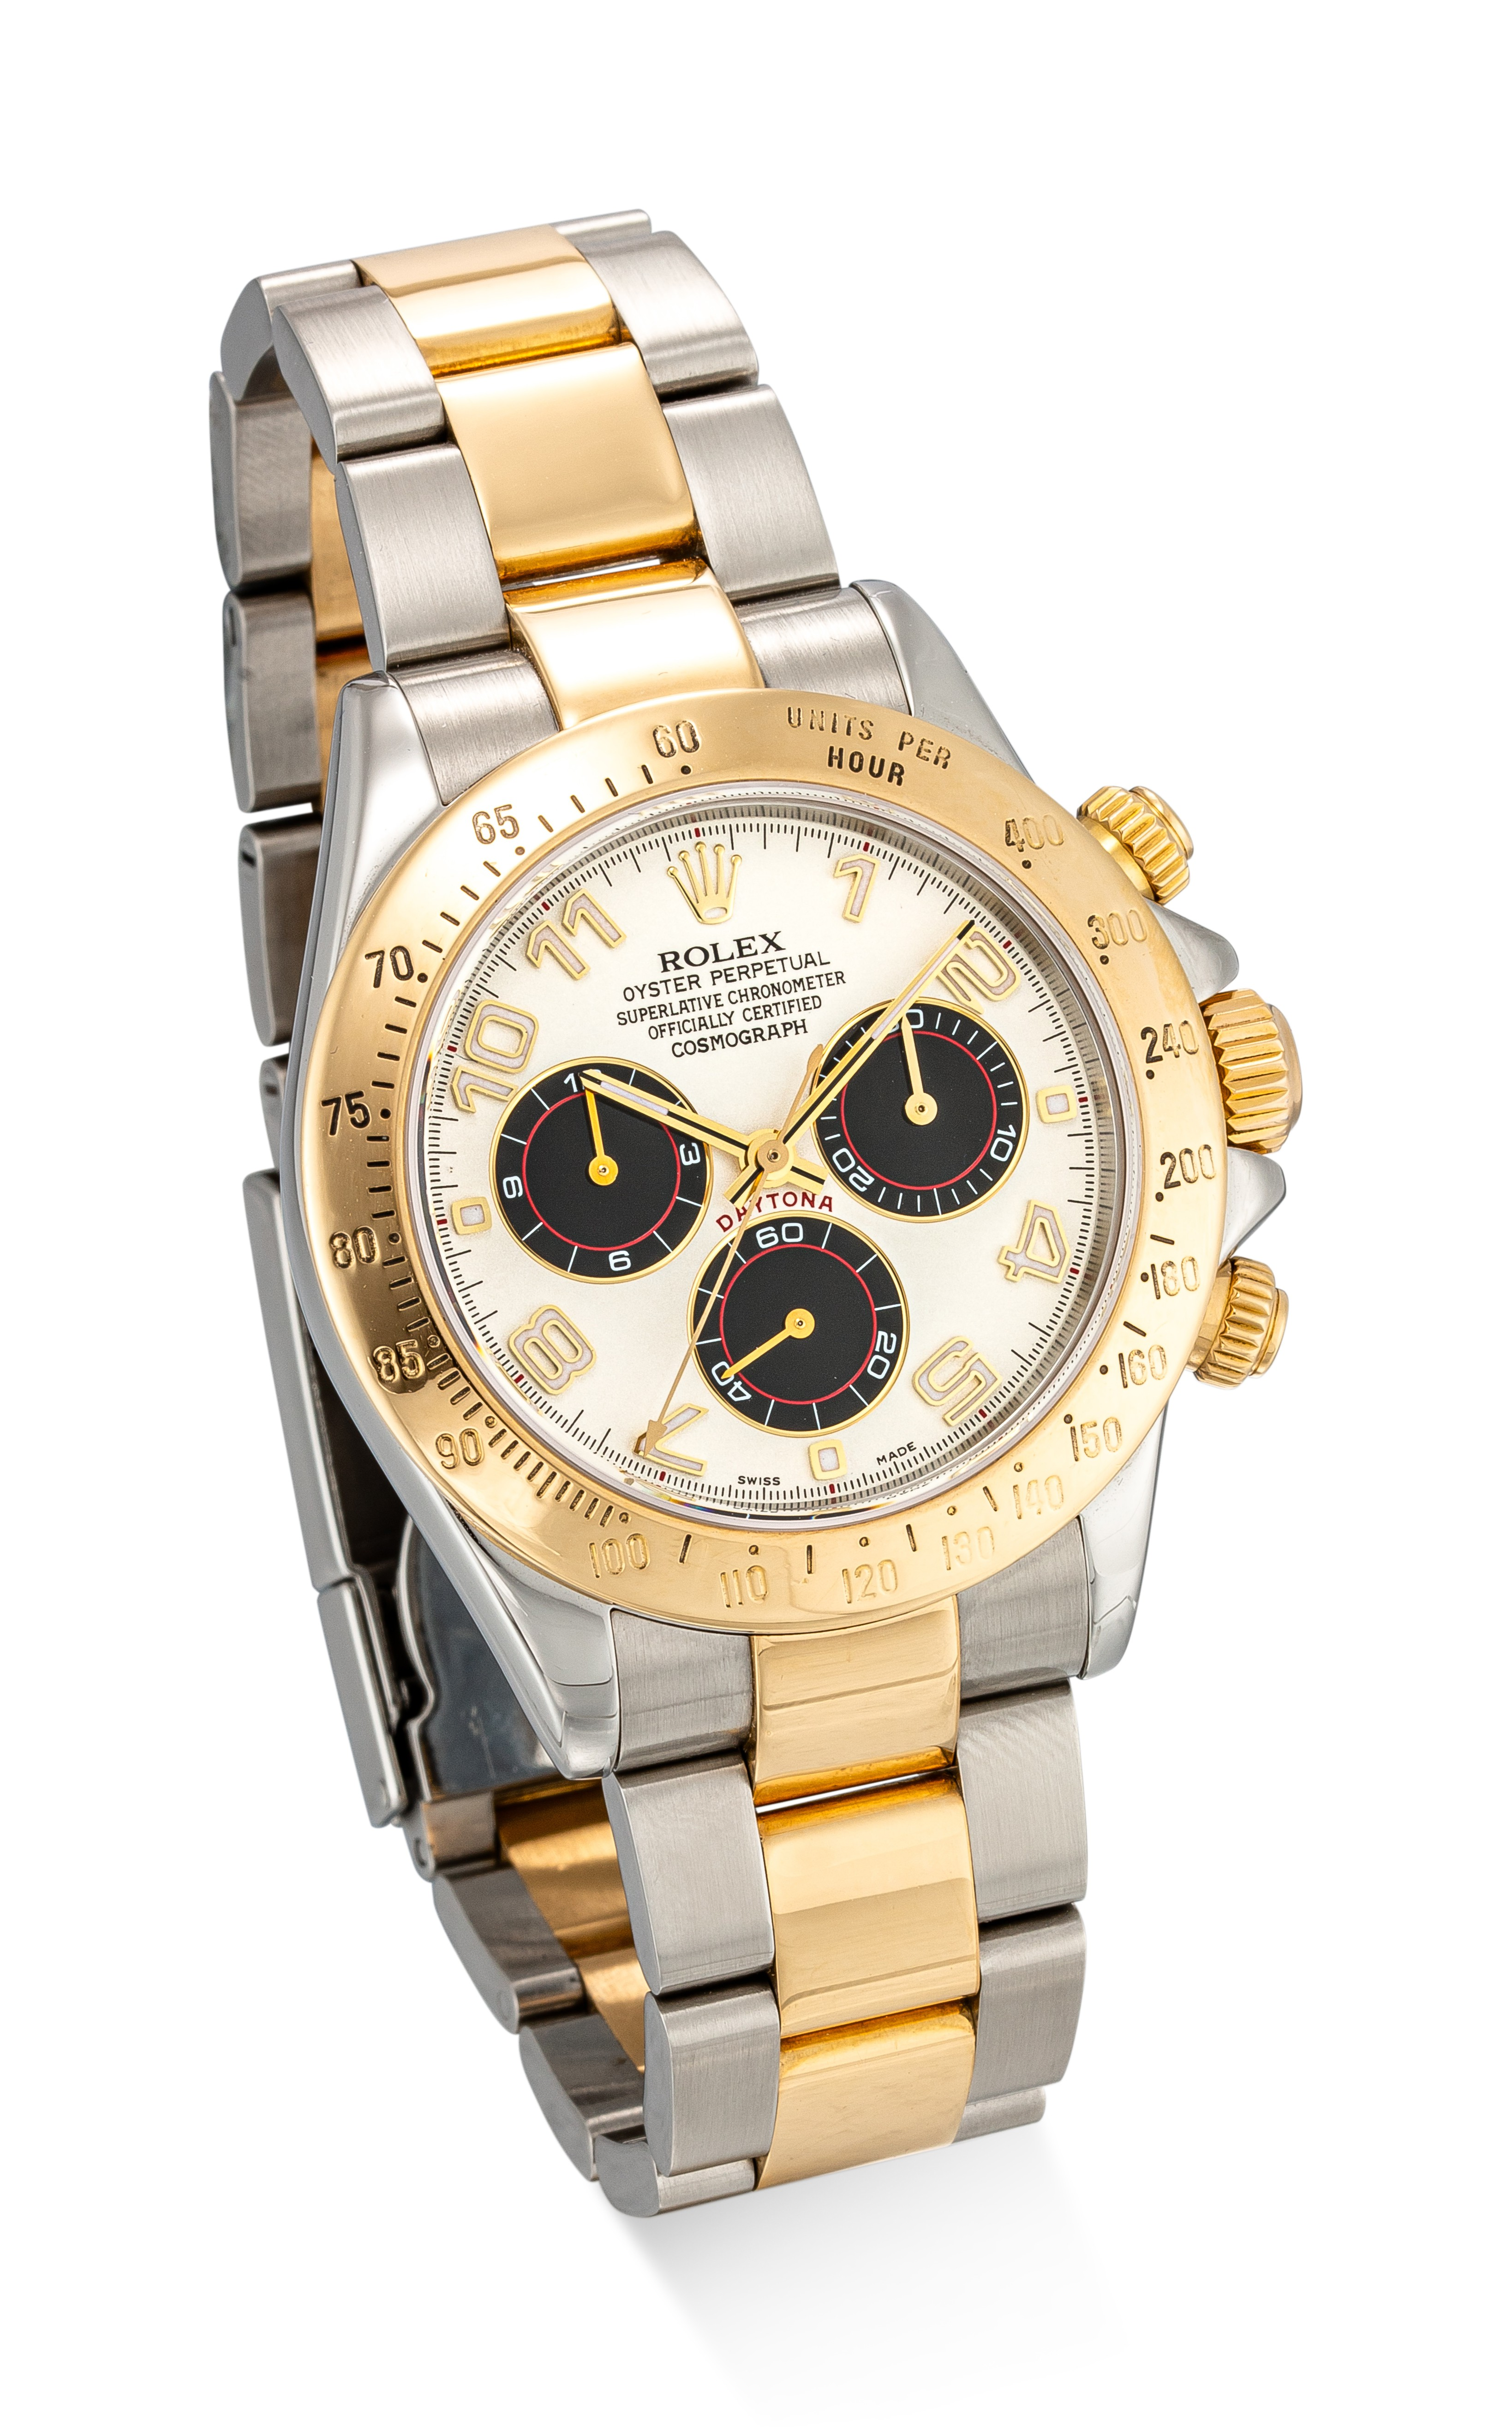 cosmograph-daytona-reference-116523-a-stainless-steel-and-yellow-gold-chronograph-wristwatch-with-bracelet-circa-2003-60e3